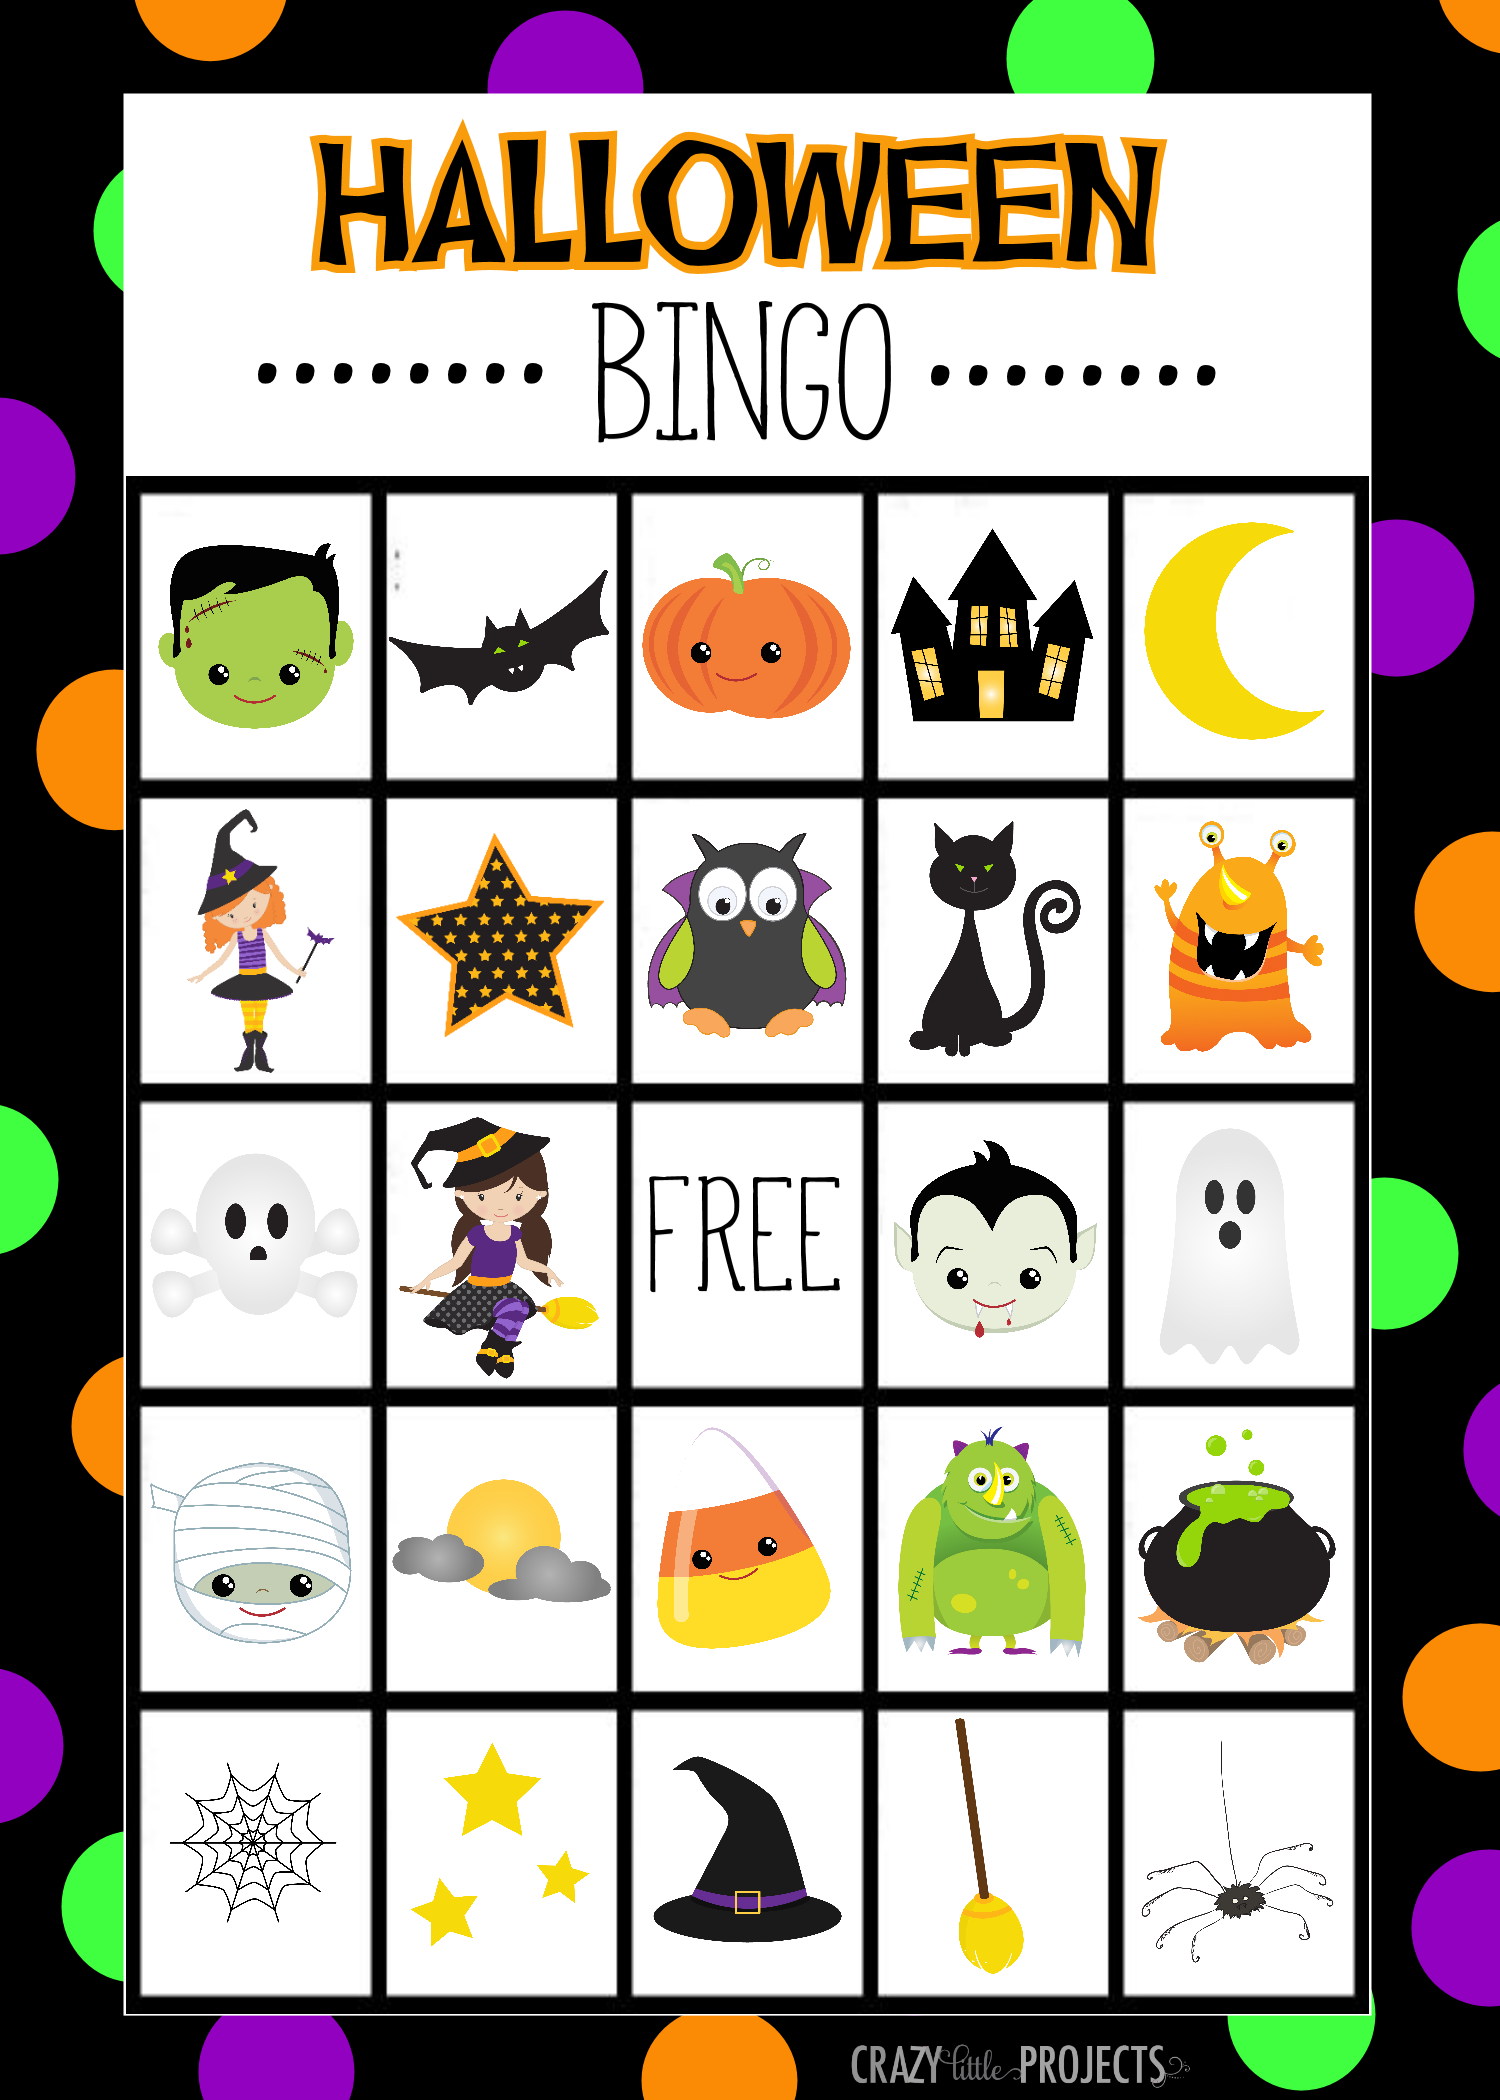 free printable halloween bingo cards by crazy little projects - Preschool Halloween Bingo